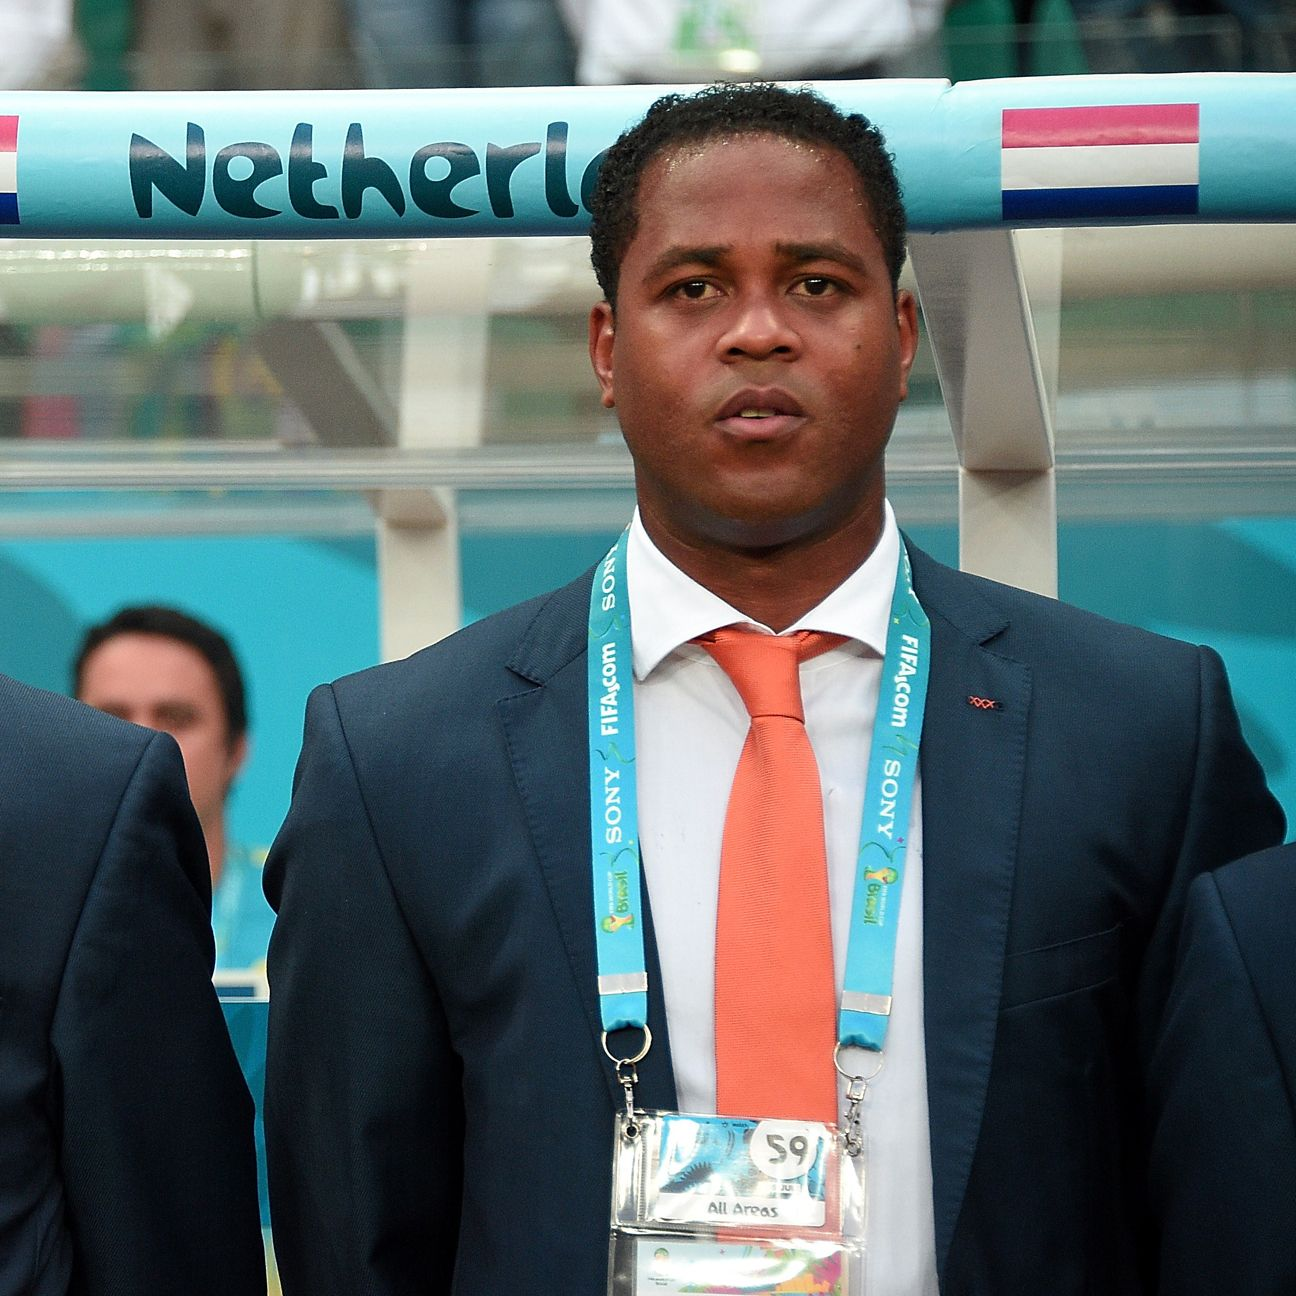 After playing for Louis van Gaal at Ajax and Barcelona, Patrick Kluivert later served as an assistant on Van Gaal's Netherlands staff at the 2014 World Cup.